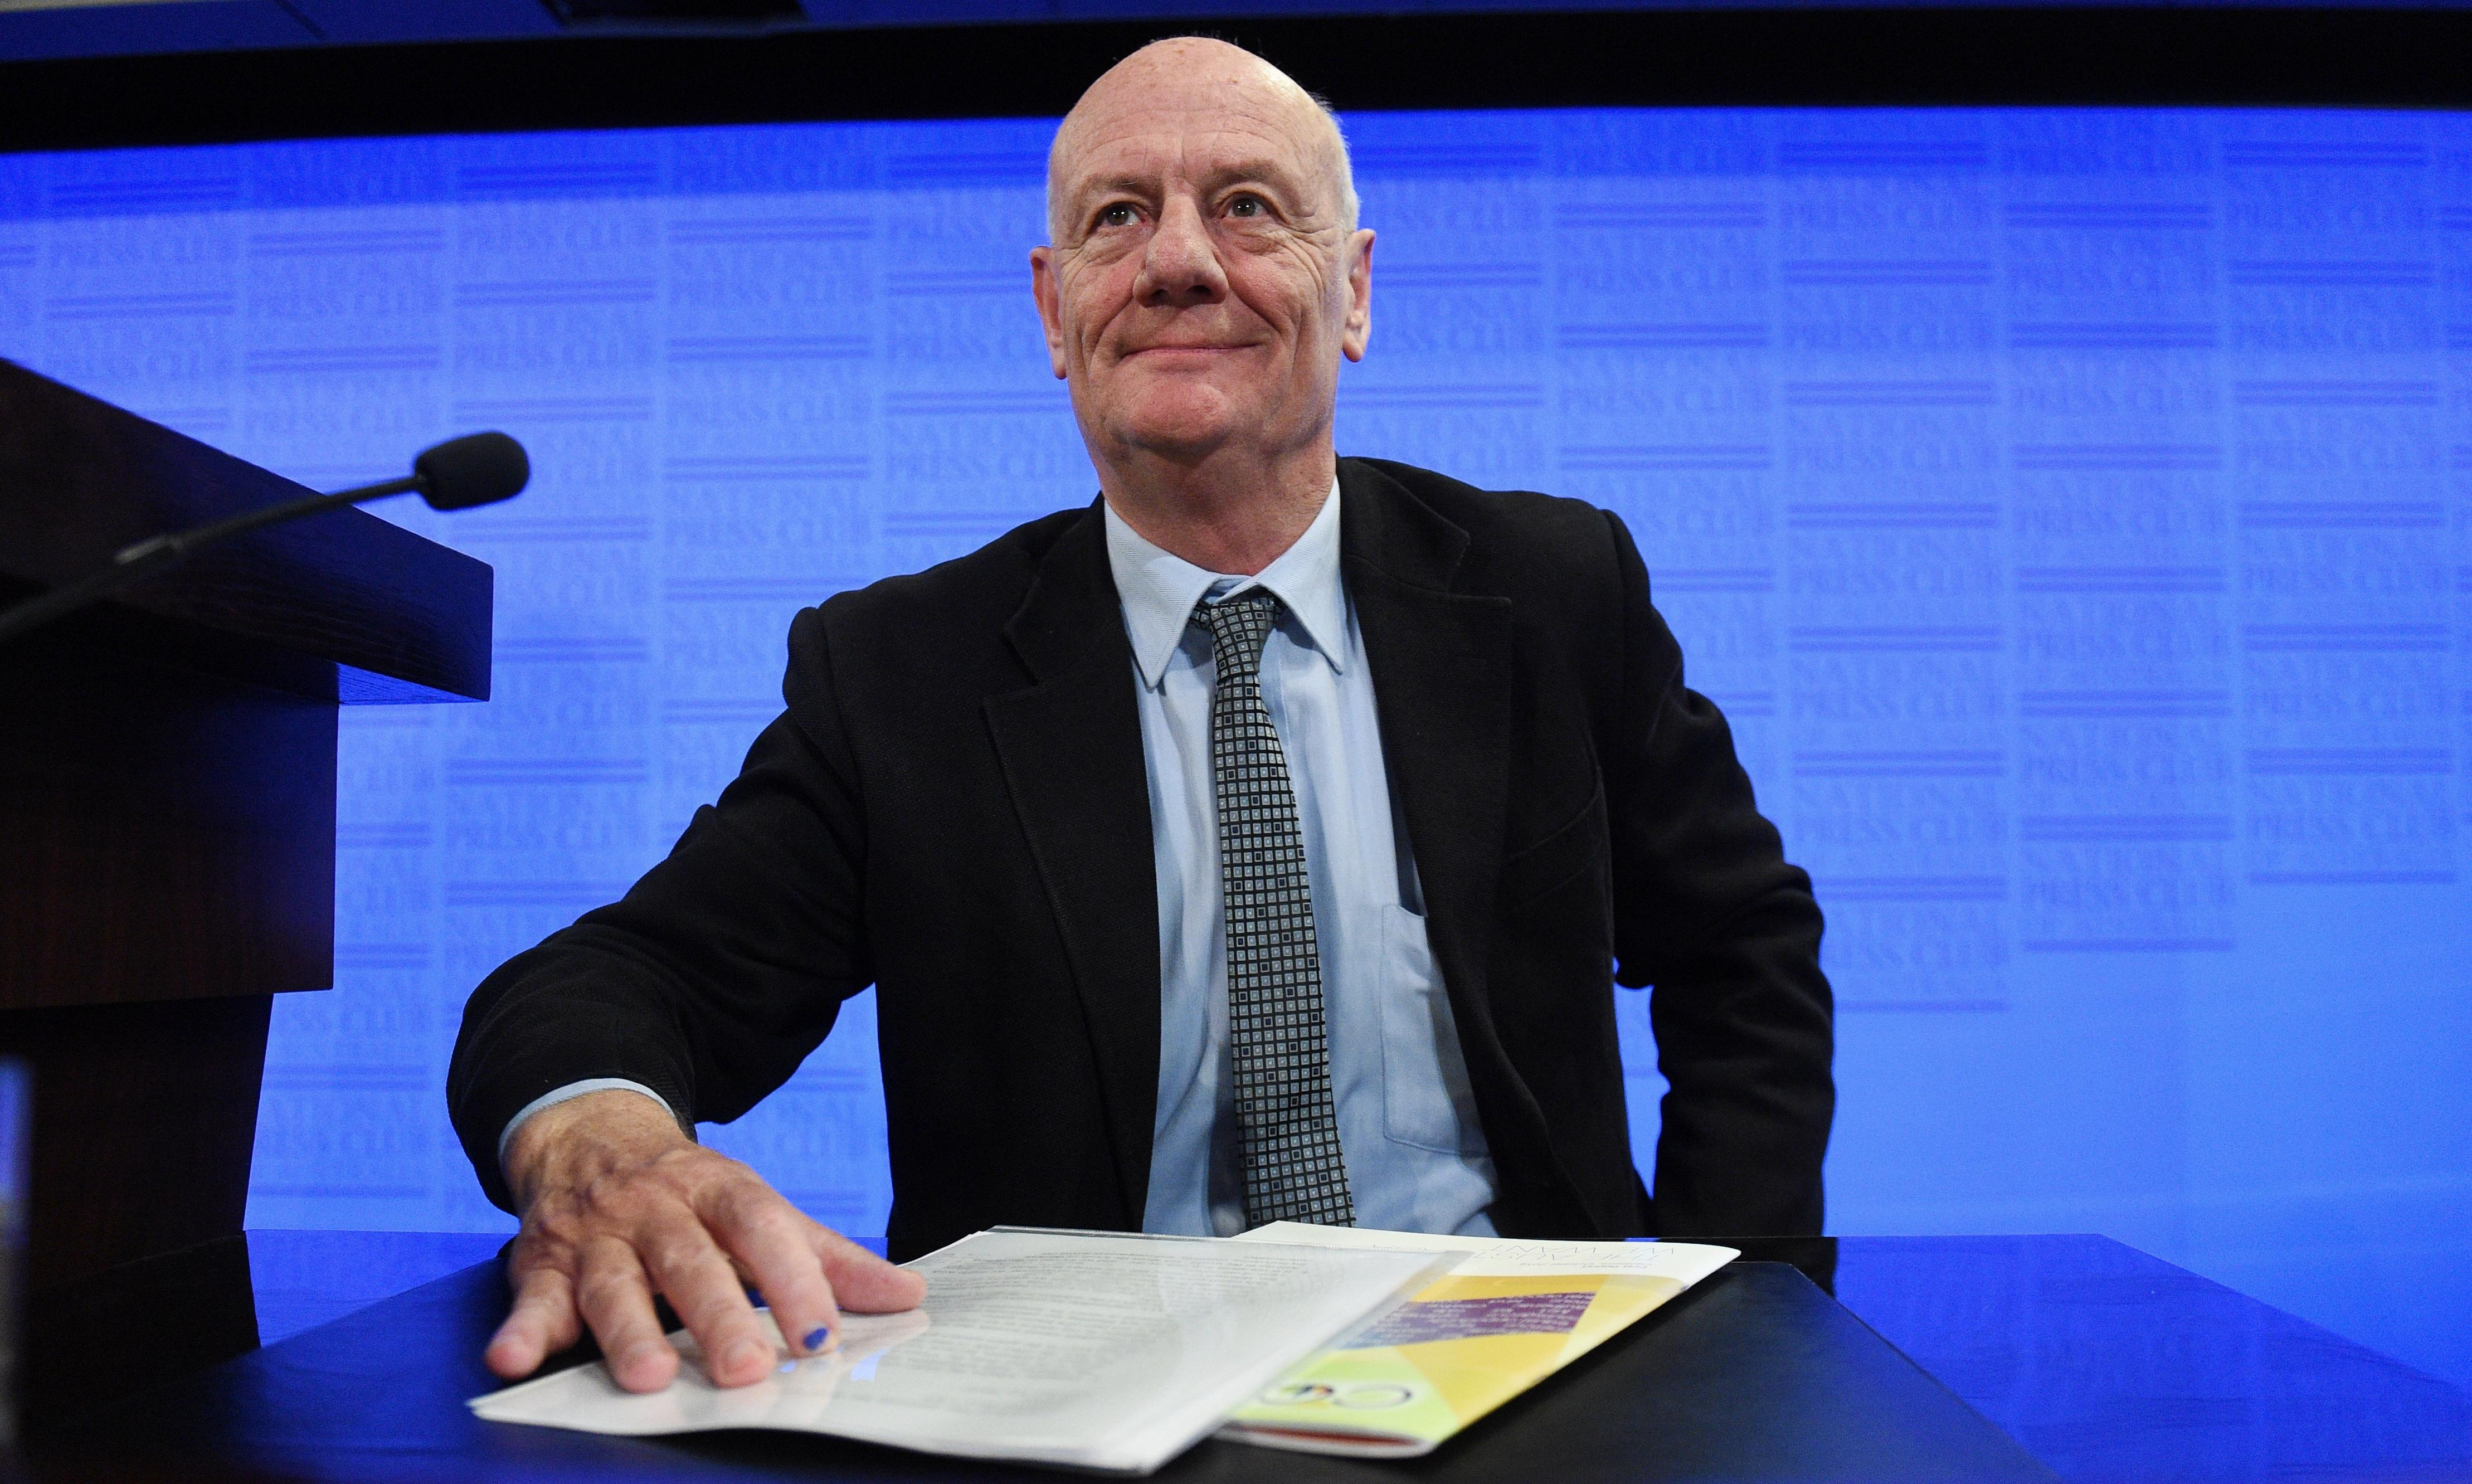 Tim Costello: 'Christians need to calm down' and 'suck it up' over alleged persecution